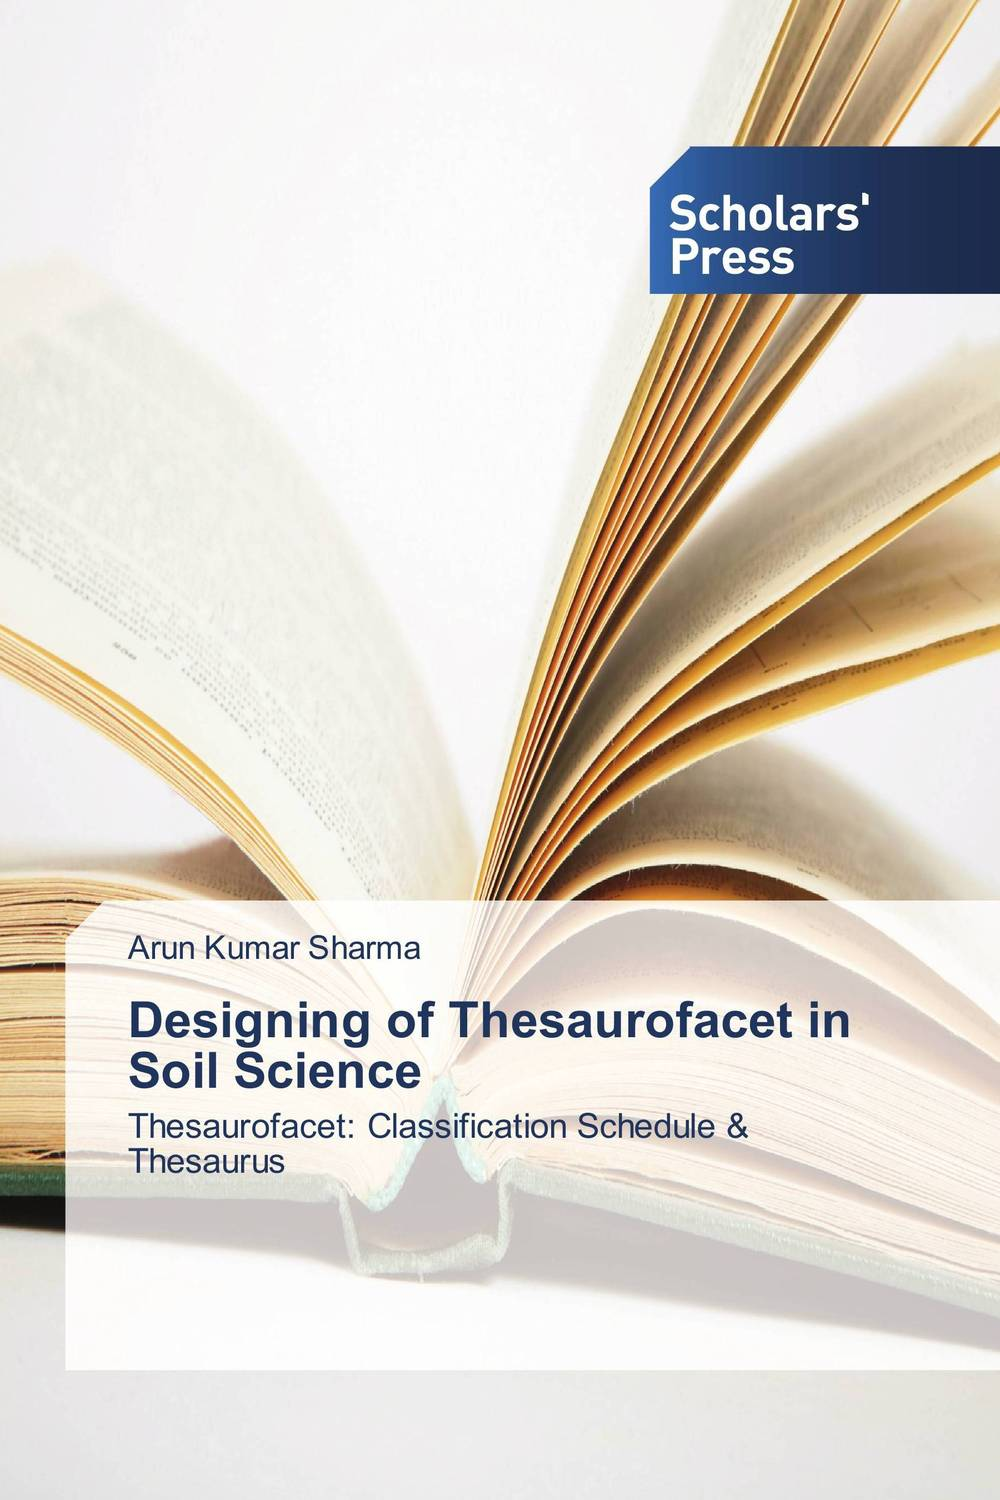 Designing of Thesaurofacet in Soil Science storing and retrieving xml documents to and from rdbms